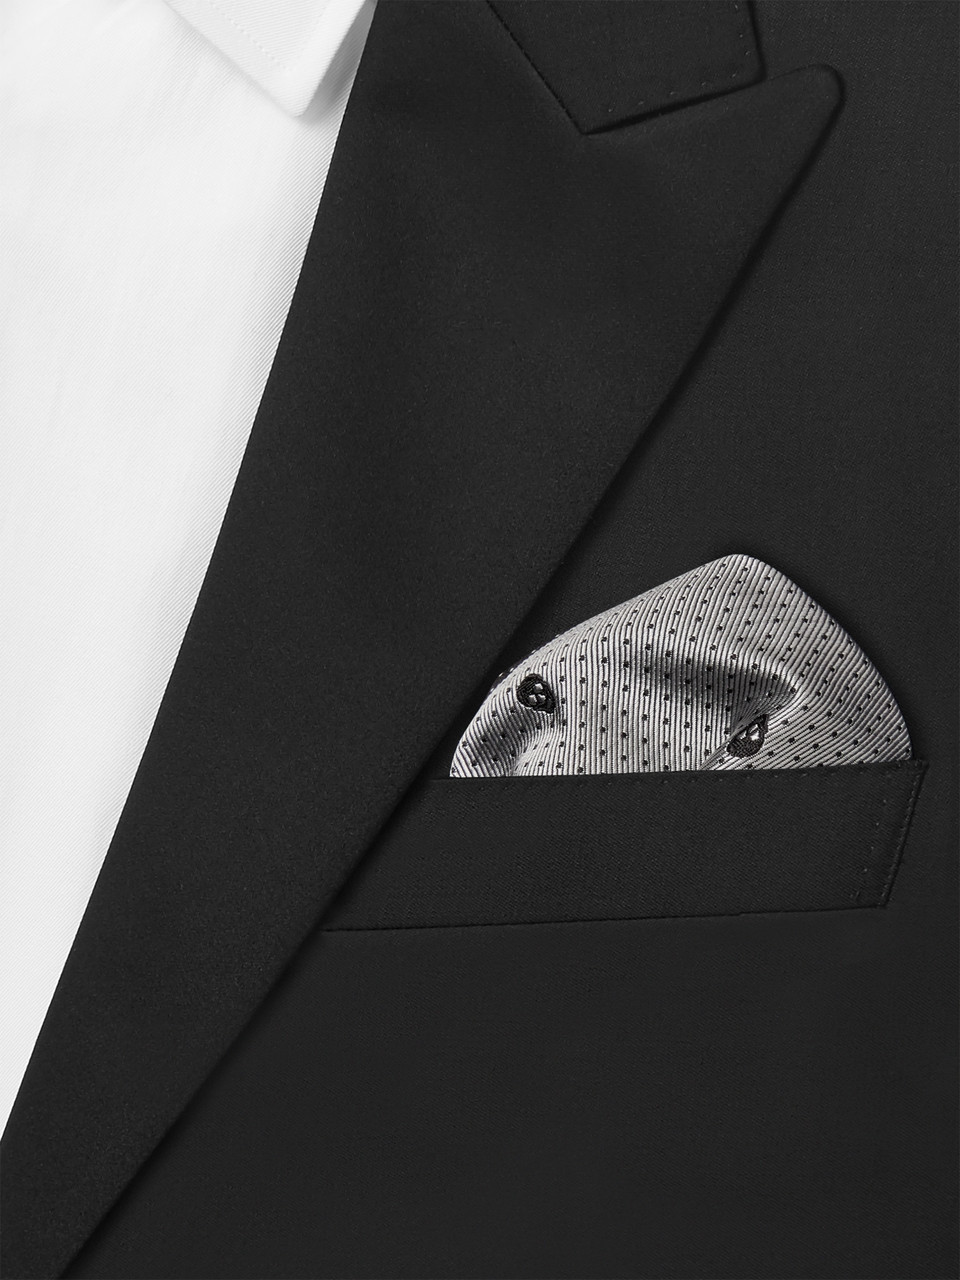 Alexander McQueen Embroidered Skull and Polka-Dot Jacquard Silk-Twill Pocket Square